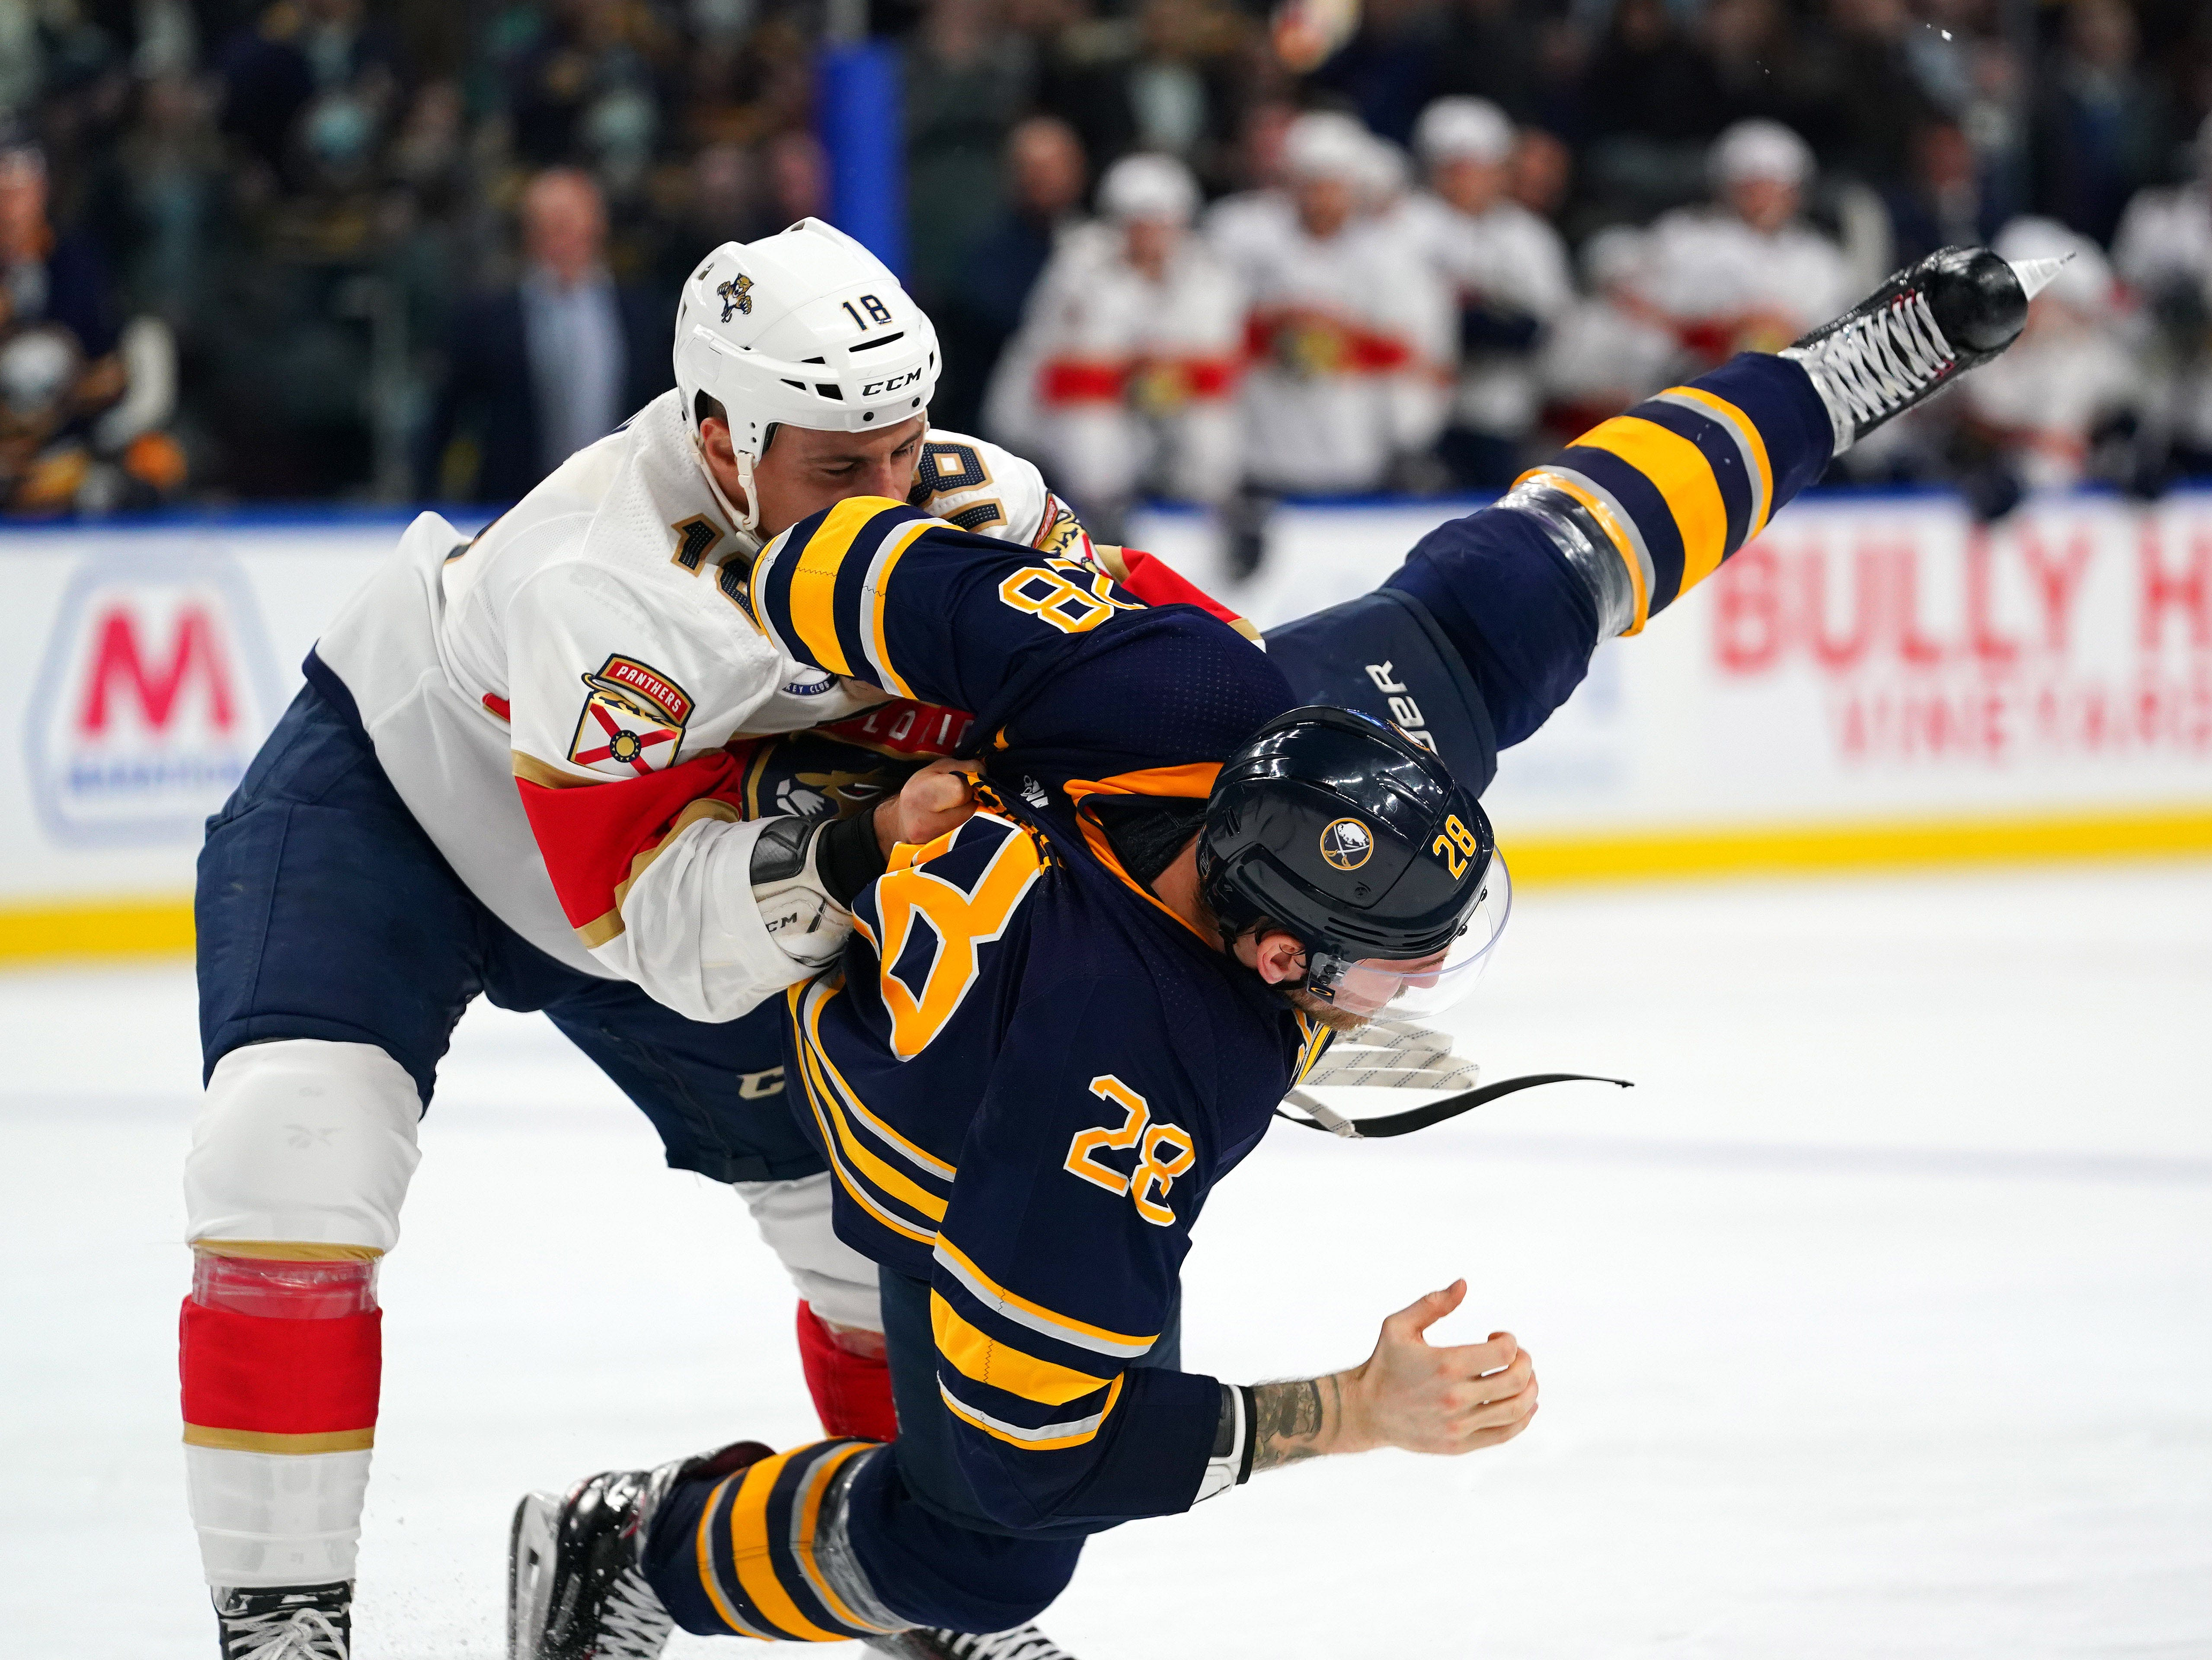 Dec. 18: Florida Panthers' Micheal Haley vs. Buffalo Sabres' Zemgus Girgensons.